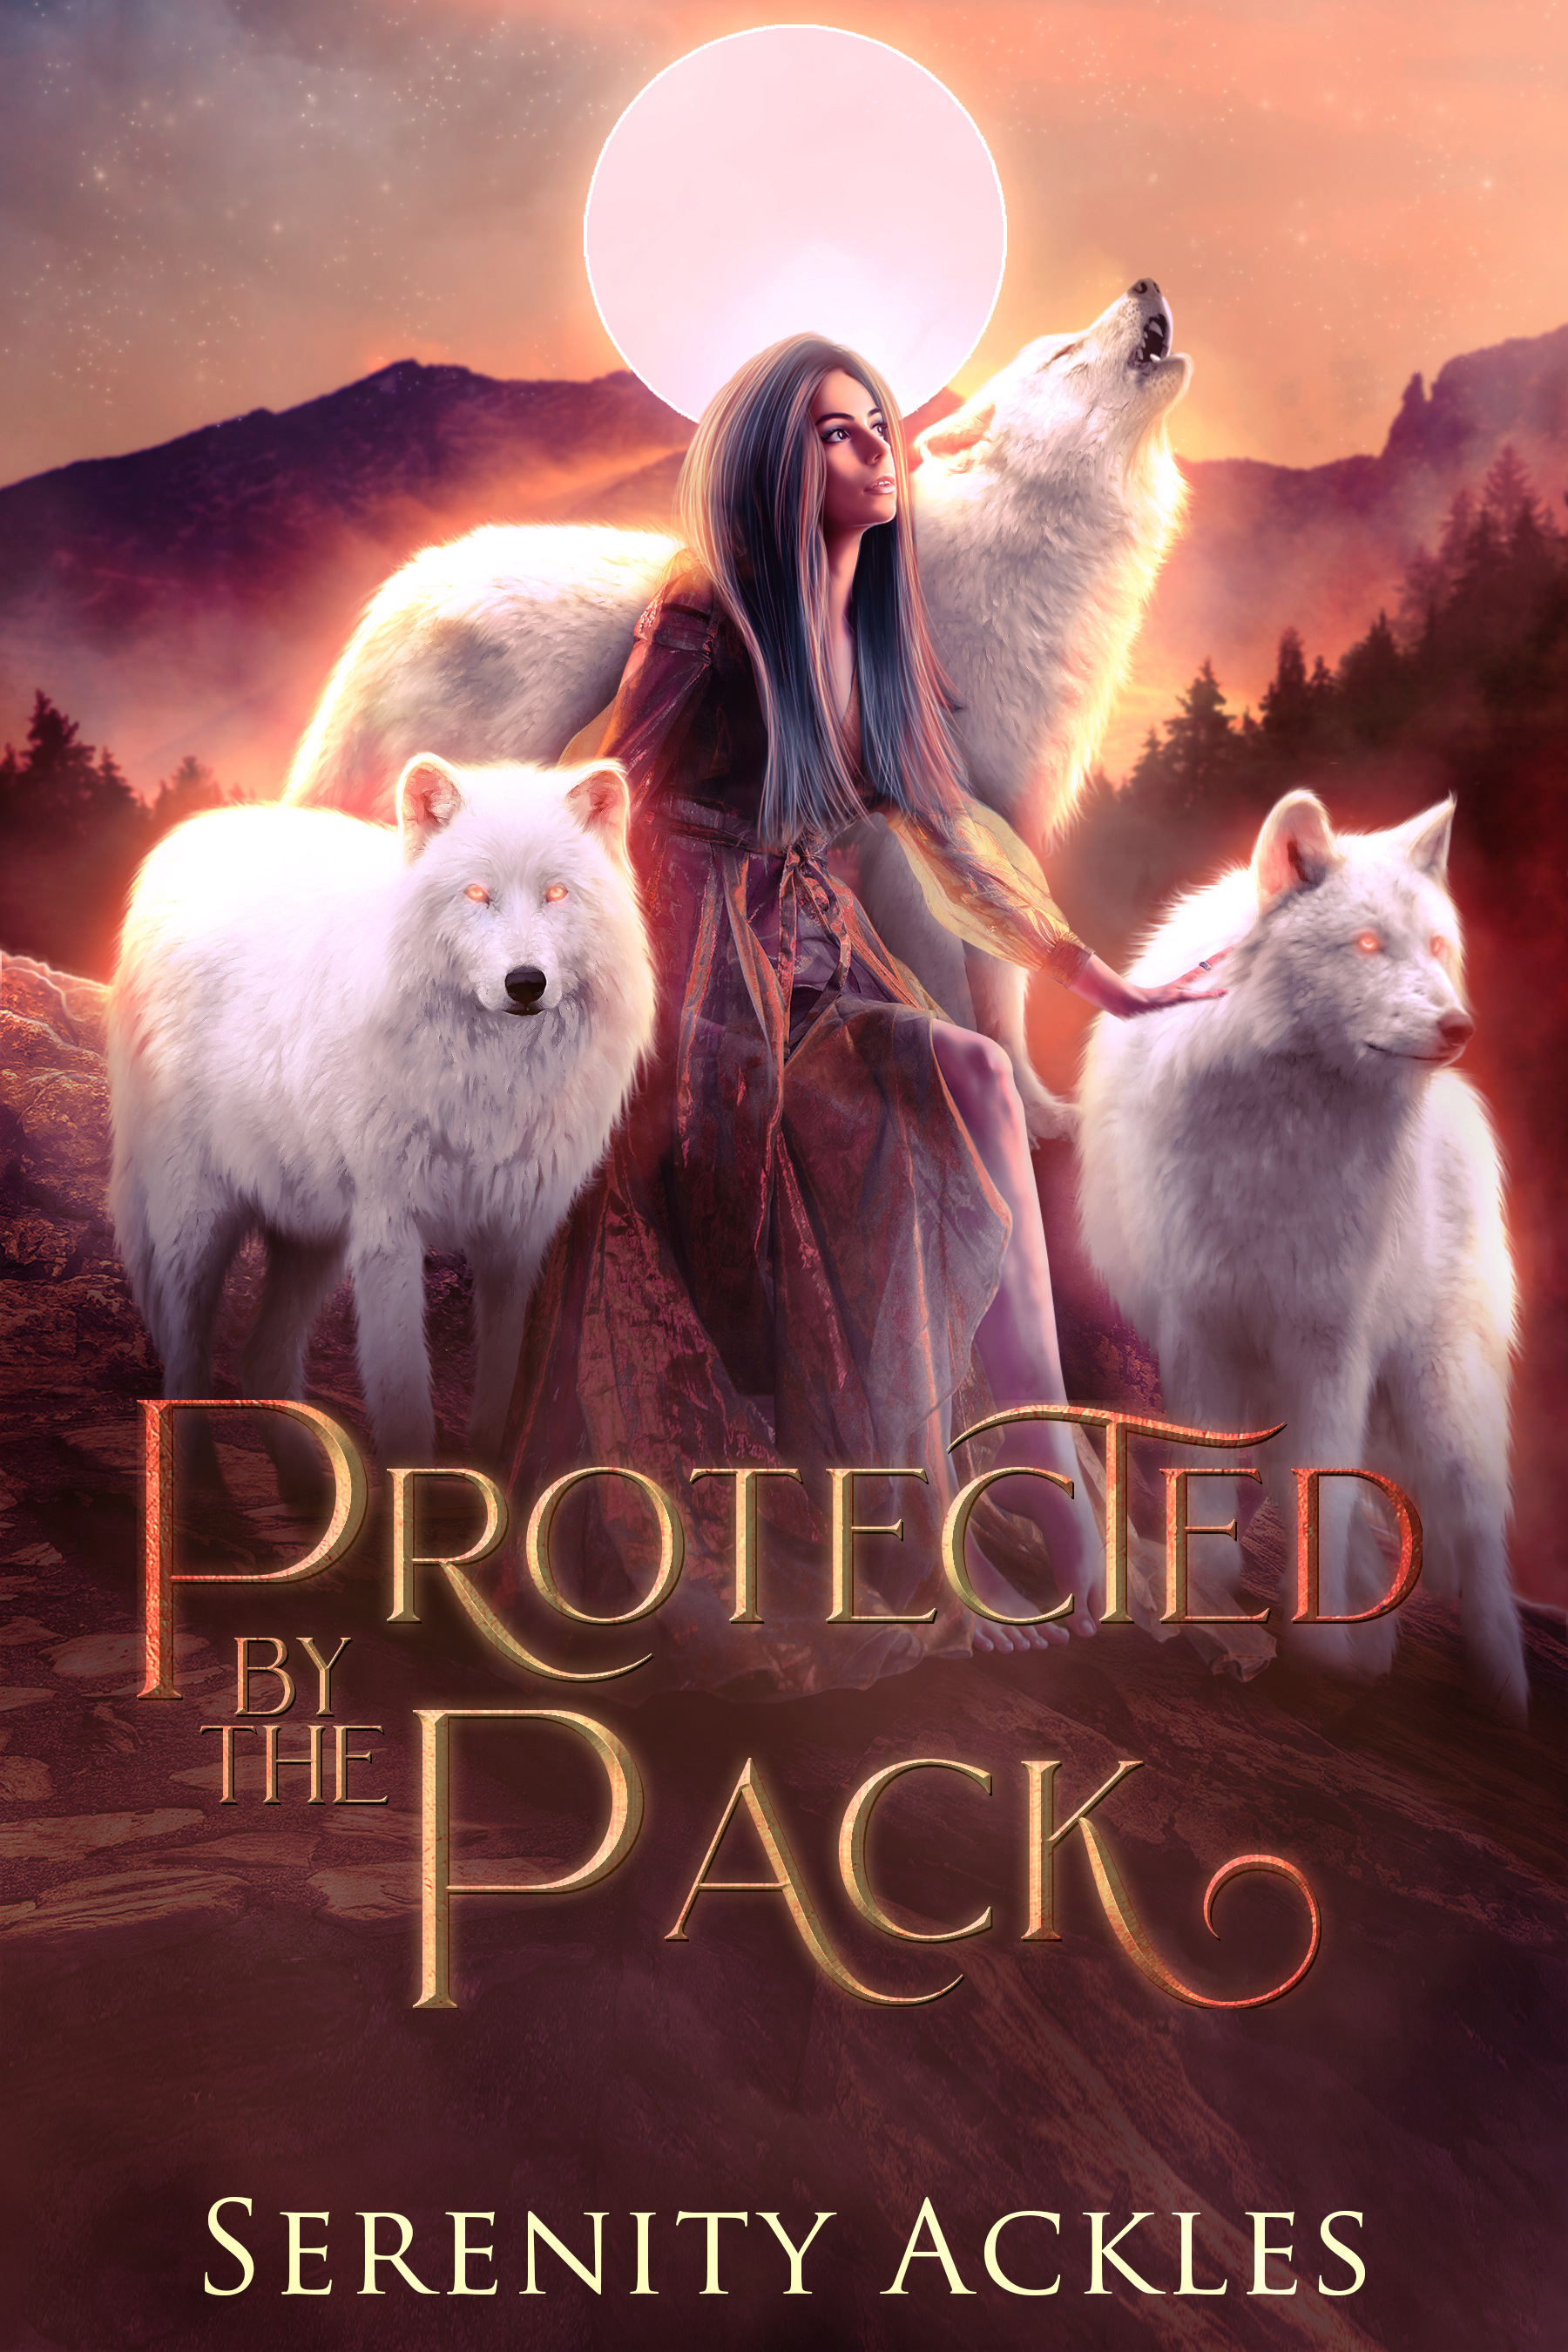 Protected by the pack